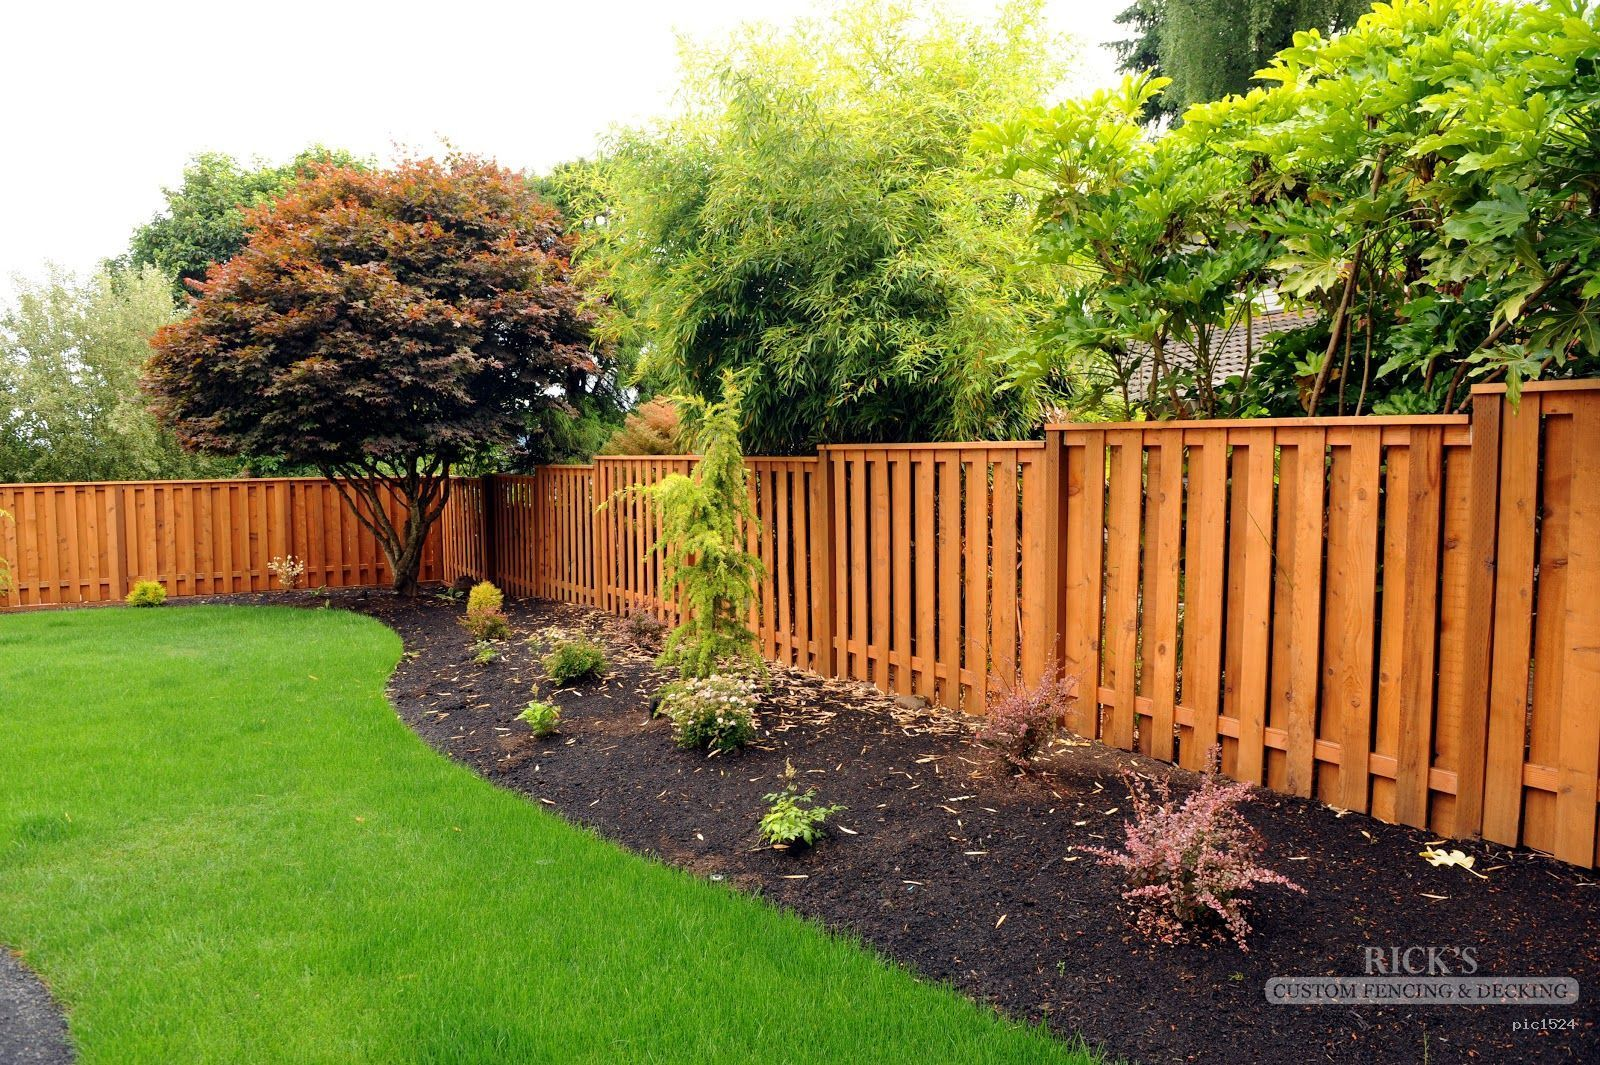 Good Neighbor Cedar Fences By Ricks Fencing Serving OR WA - 5 backyard fence types